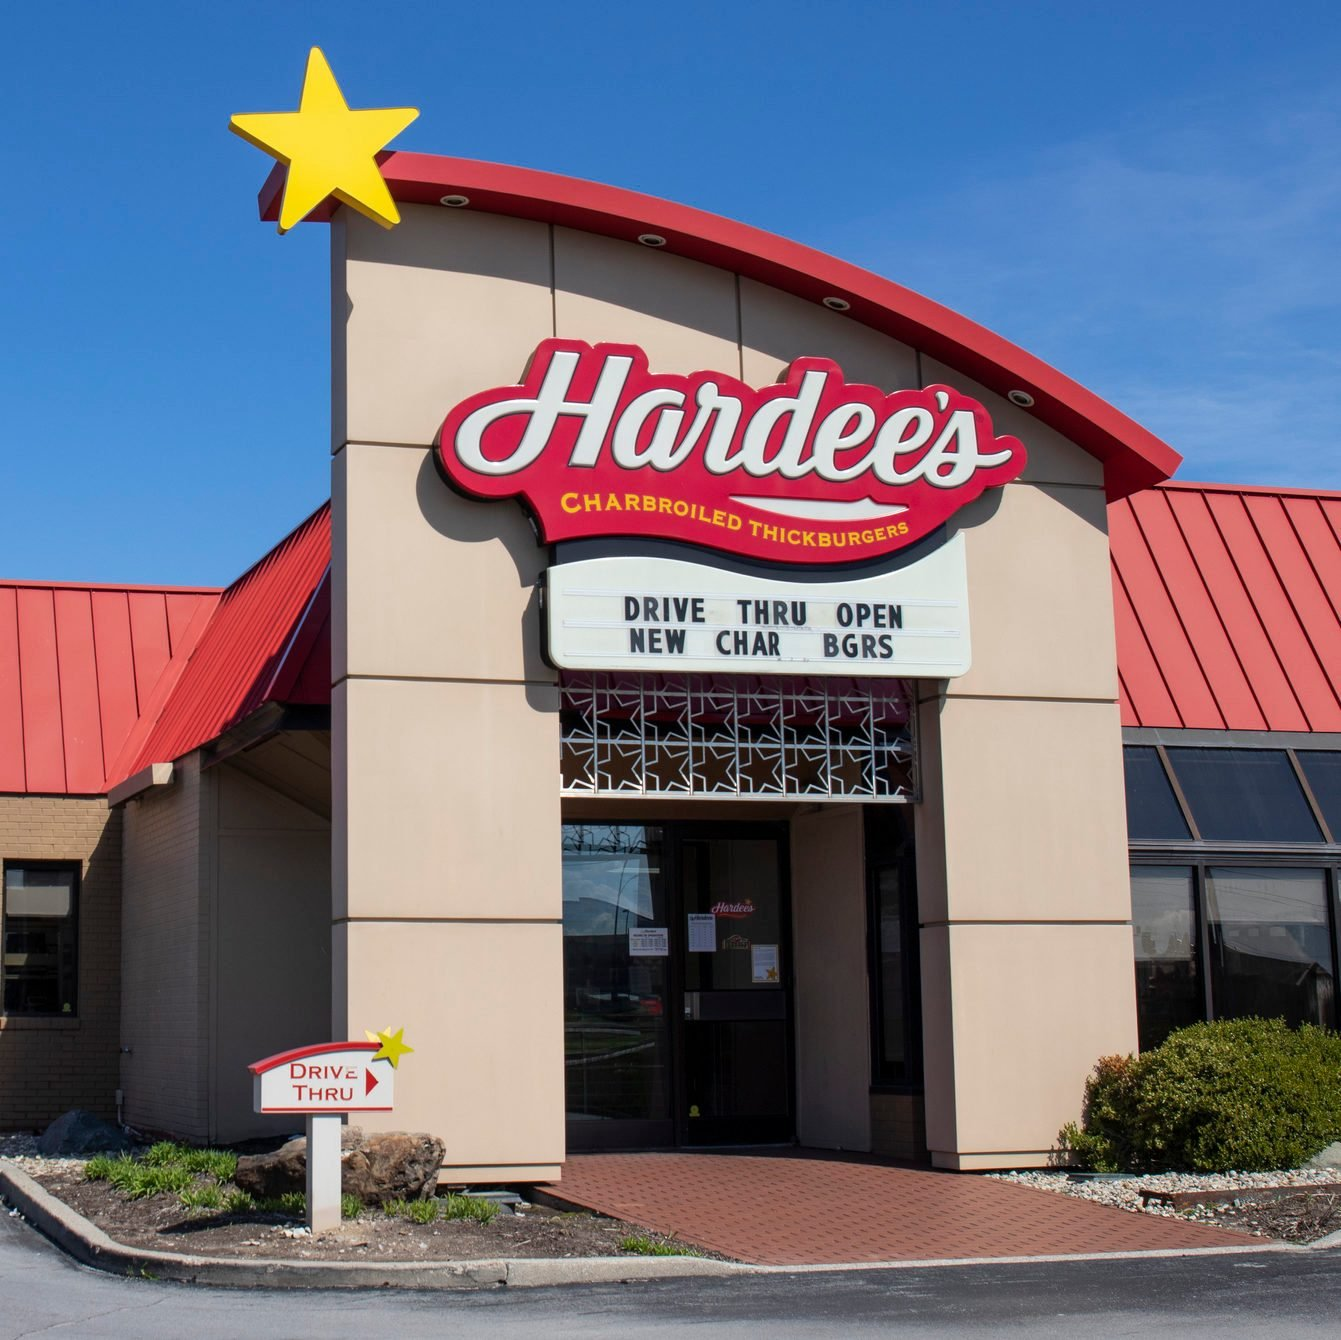 Hardee's Location. Hardee's is offering Uber and Door Dash delivery and drive thru service during social distancing.